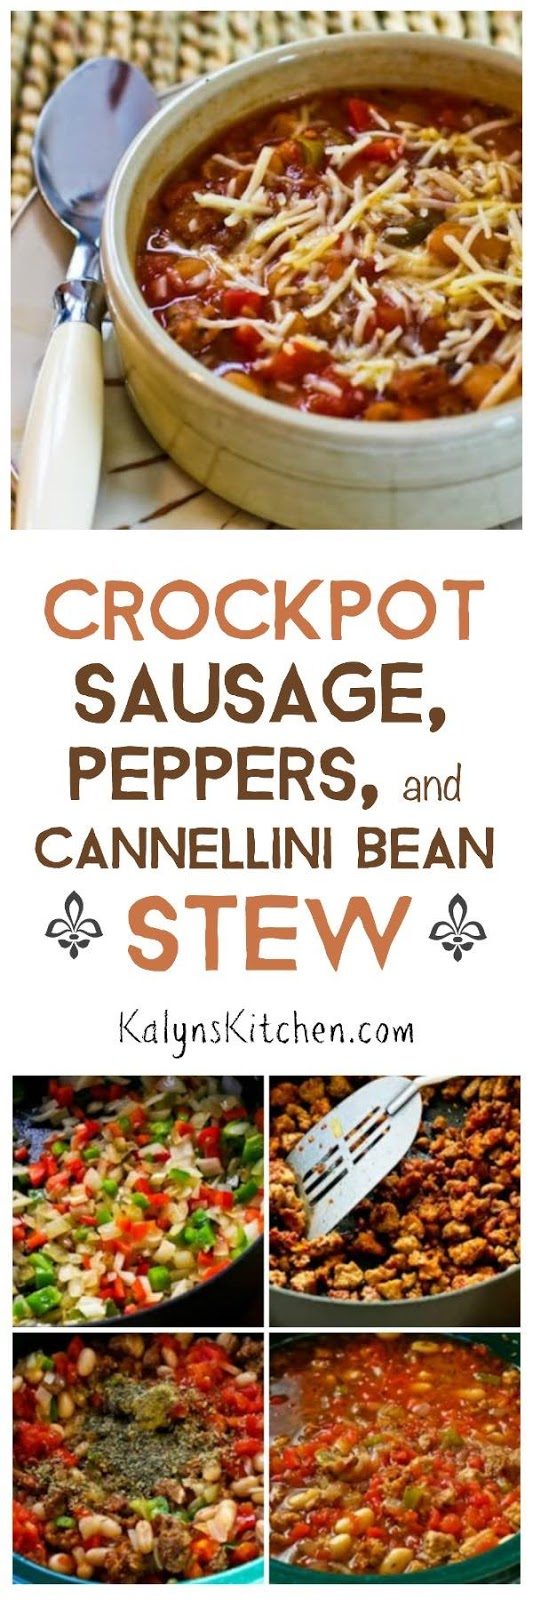 ... ®: Crockpot Sausage, Peppers, and Cannellini Bean Stew with Parmesan